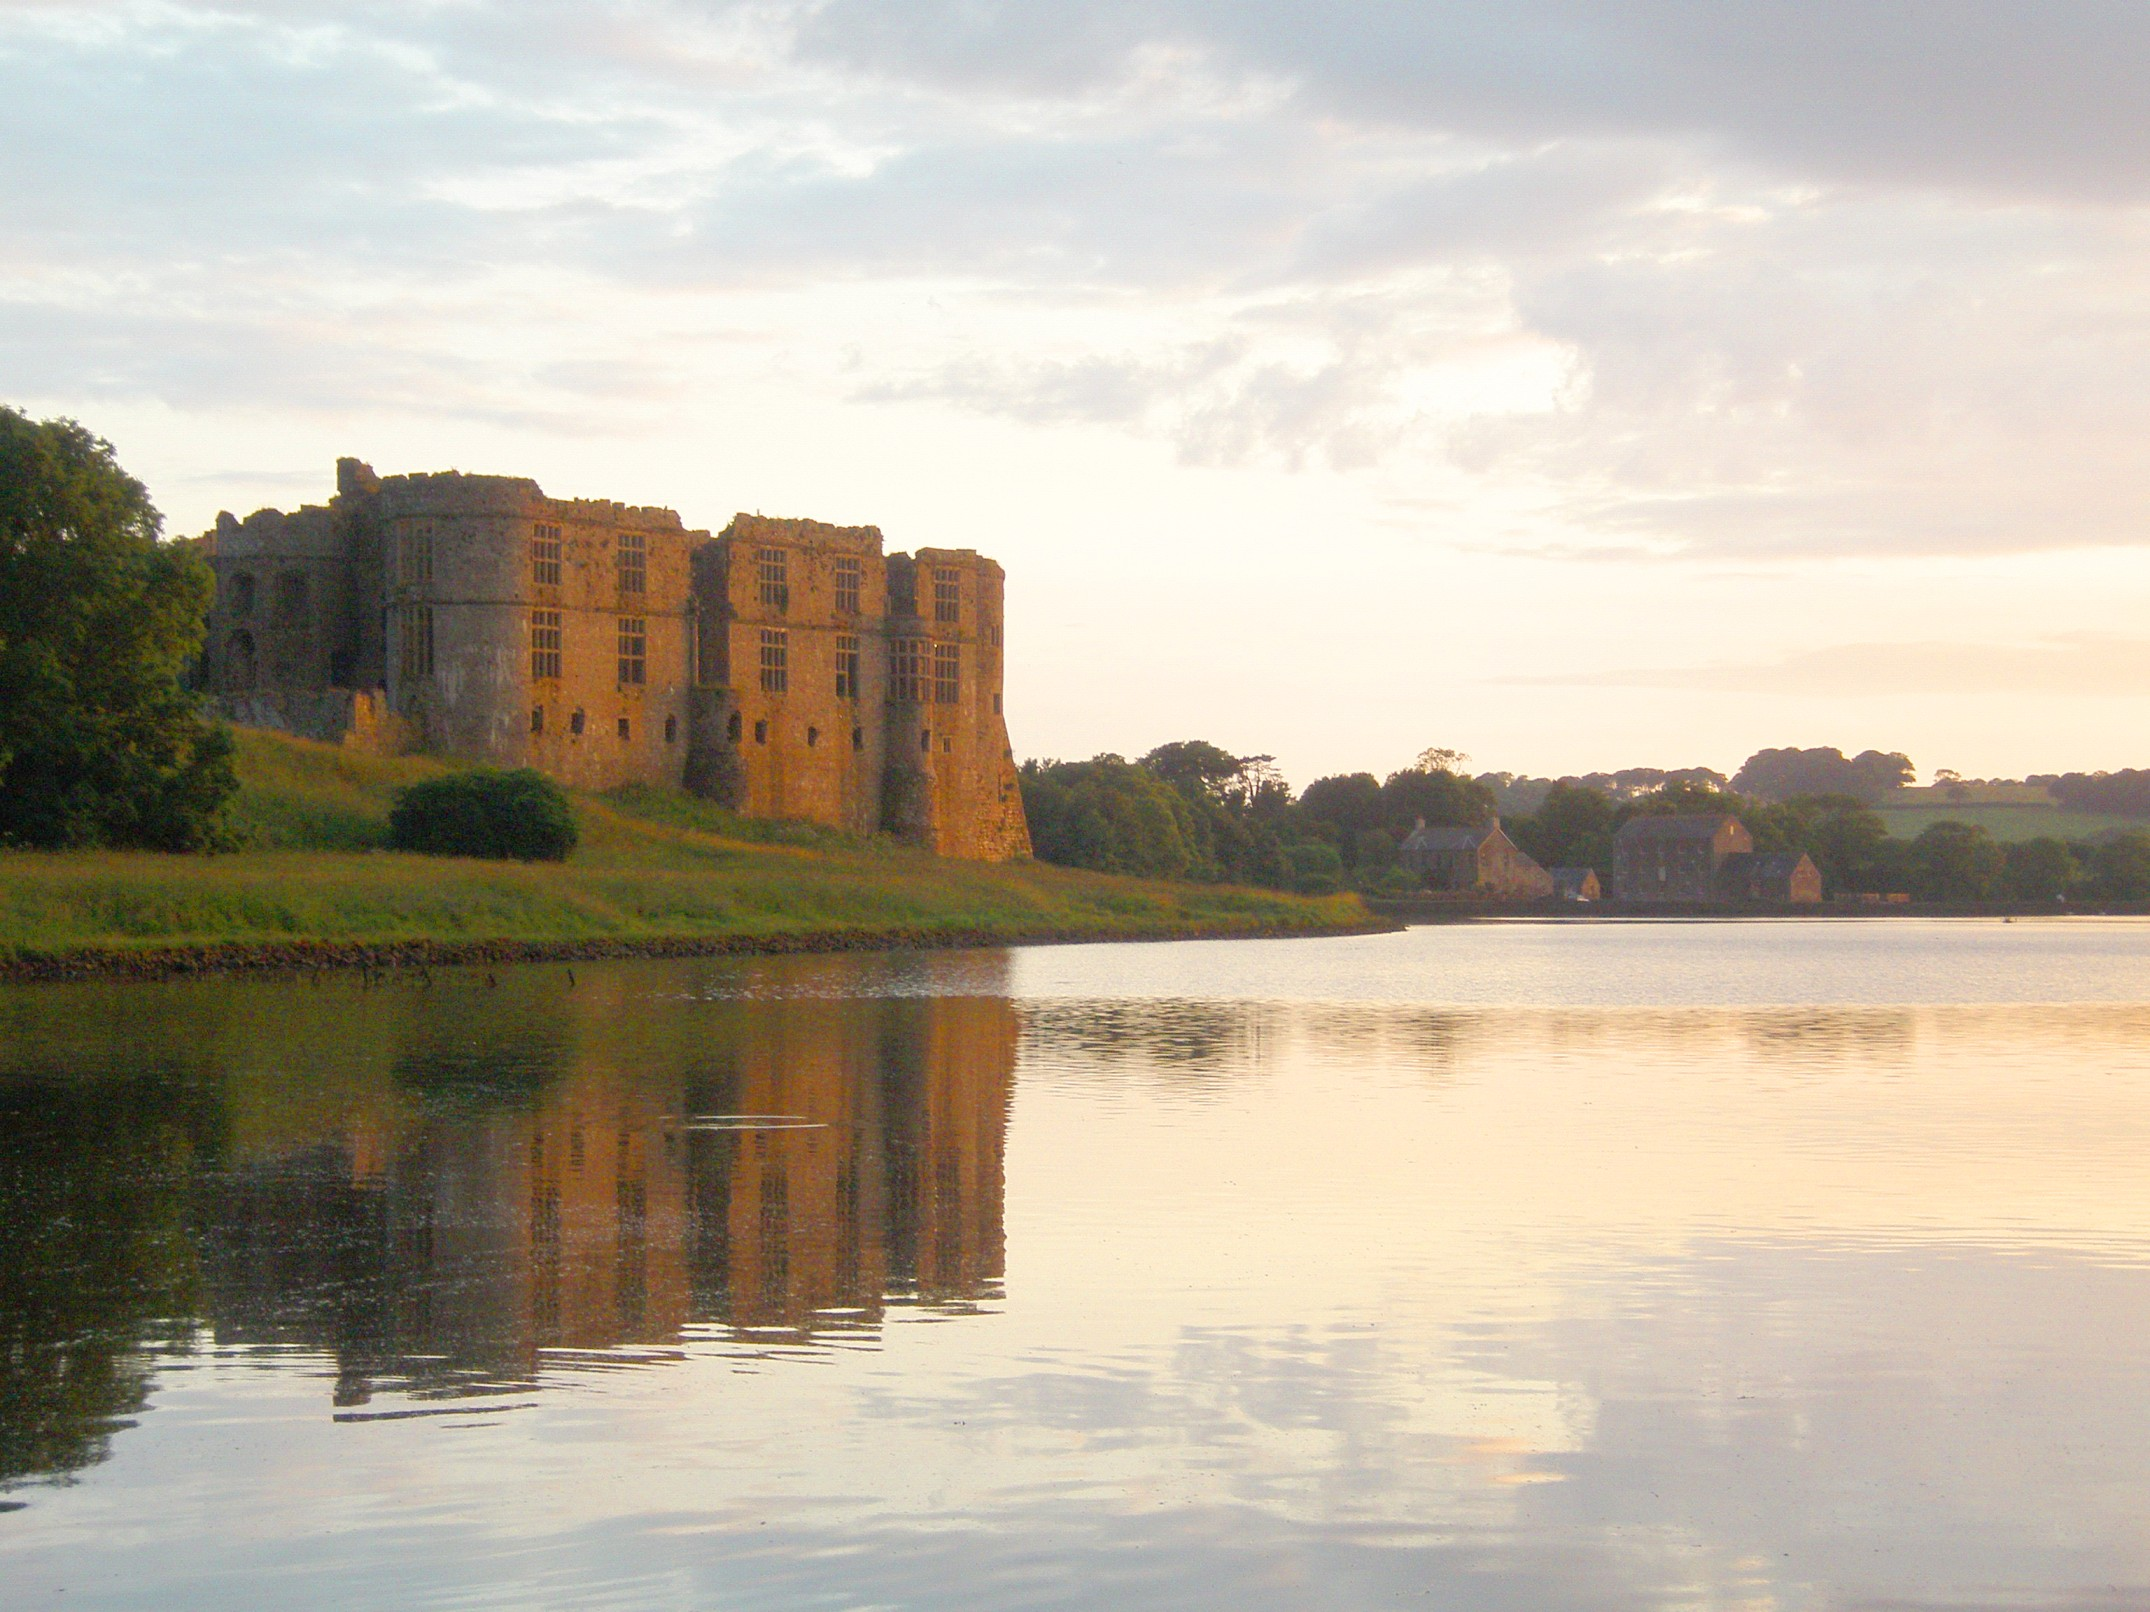 A ruined castle viewed at twilight across a calm pond